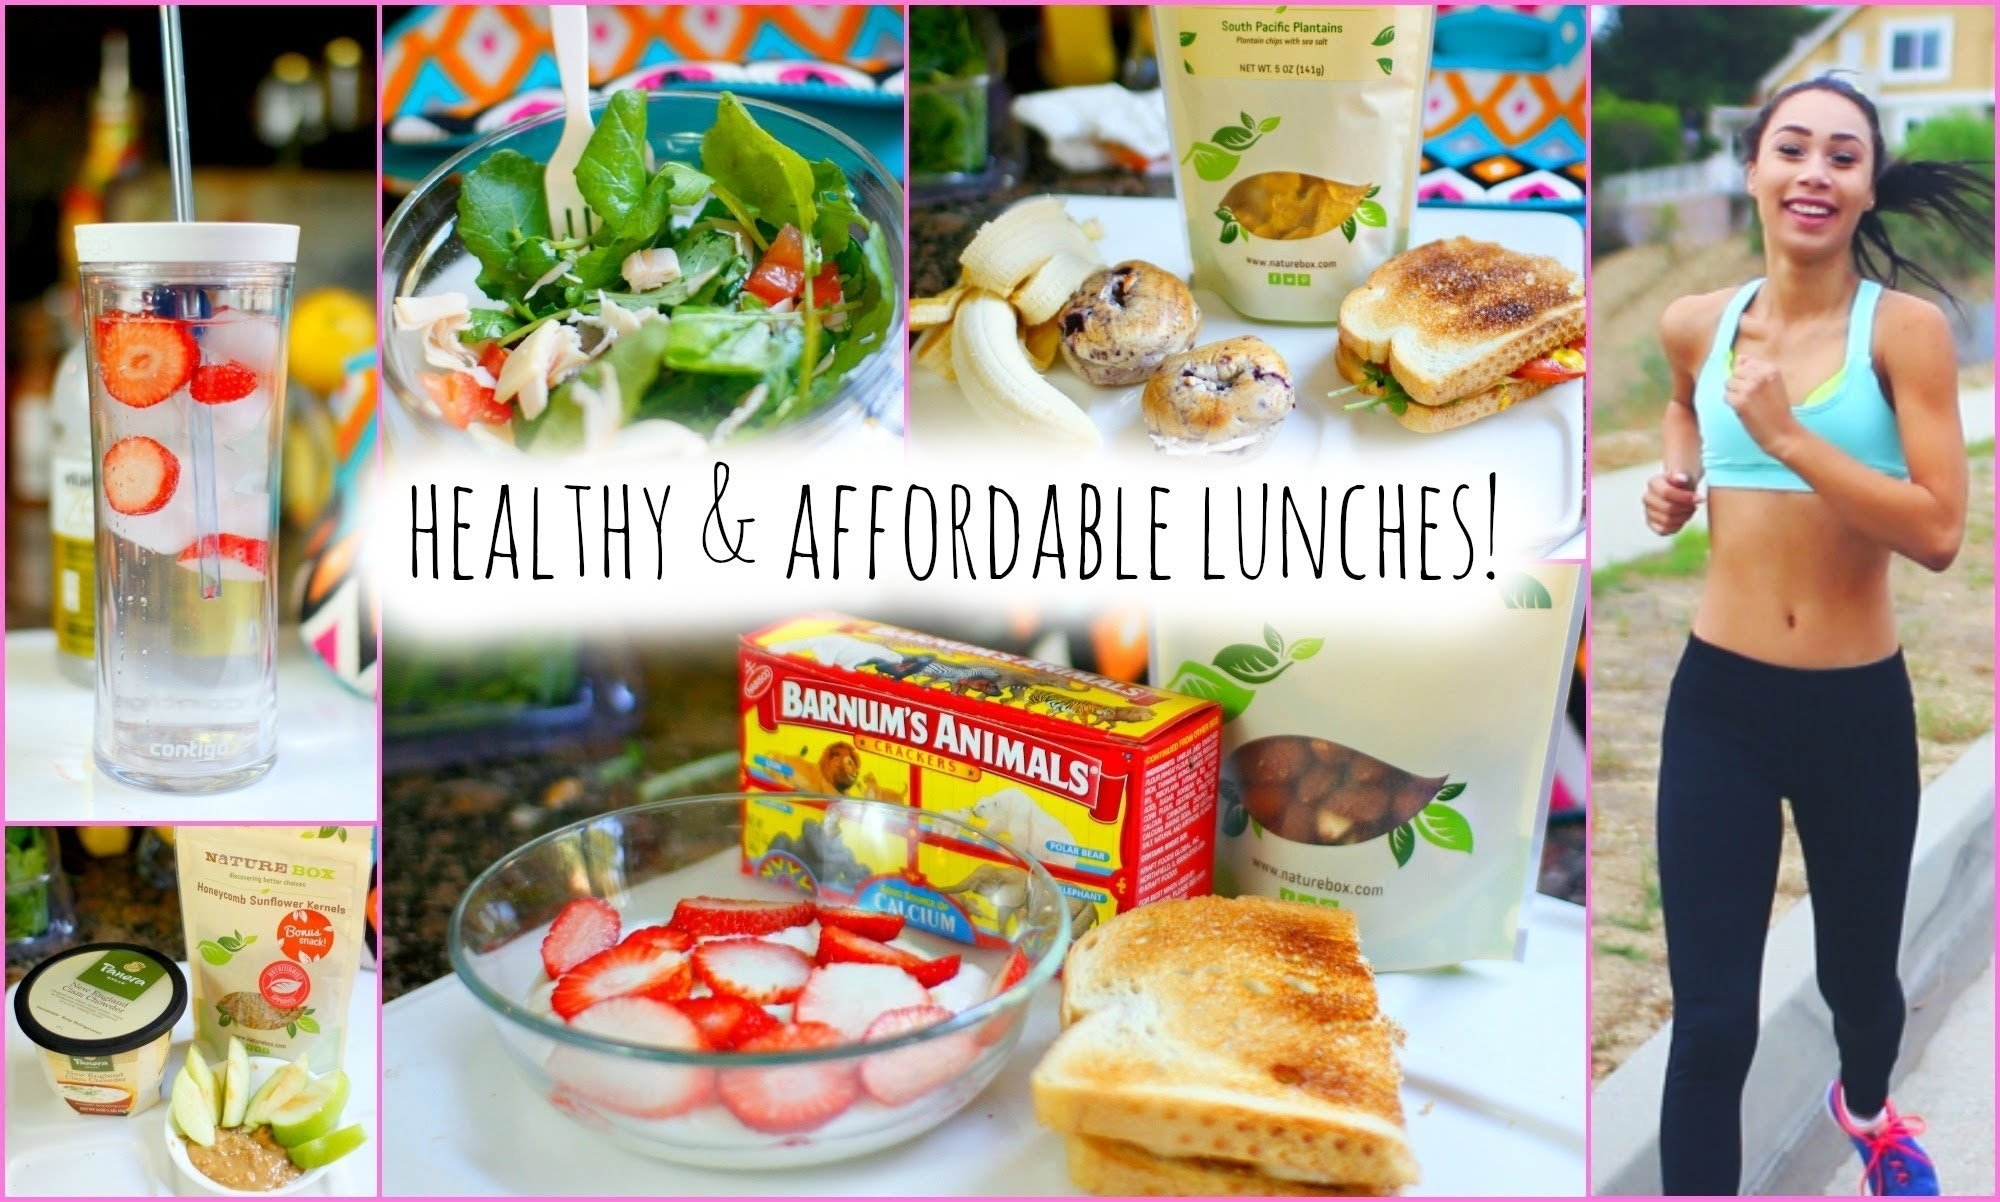 10 Trendy Good Ideas For School Lunches 5 healthy and affordable lunch ideas for school youtube 2021